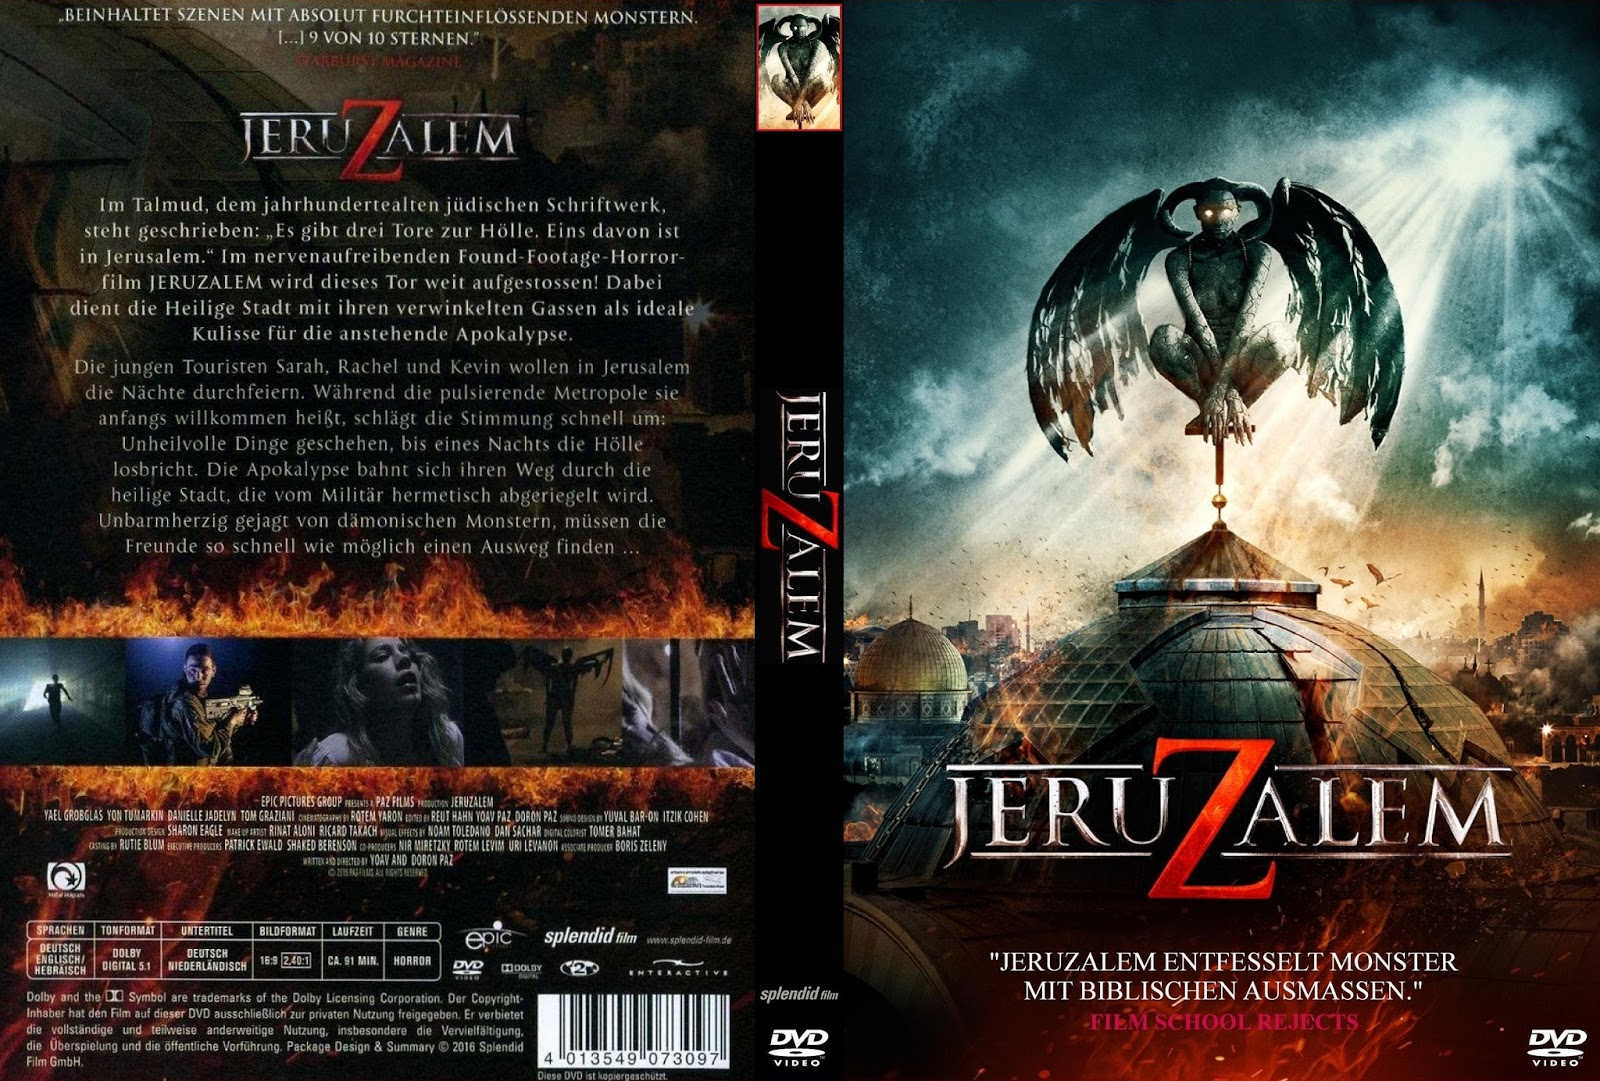 Jerusalém BDRip XviD Dual Áudio Jerusal 25C3 25A9m 2BBDRip 2B  2BXANDAODOWNLOAD